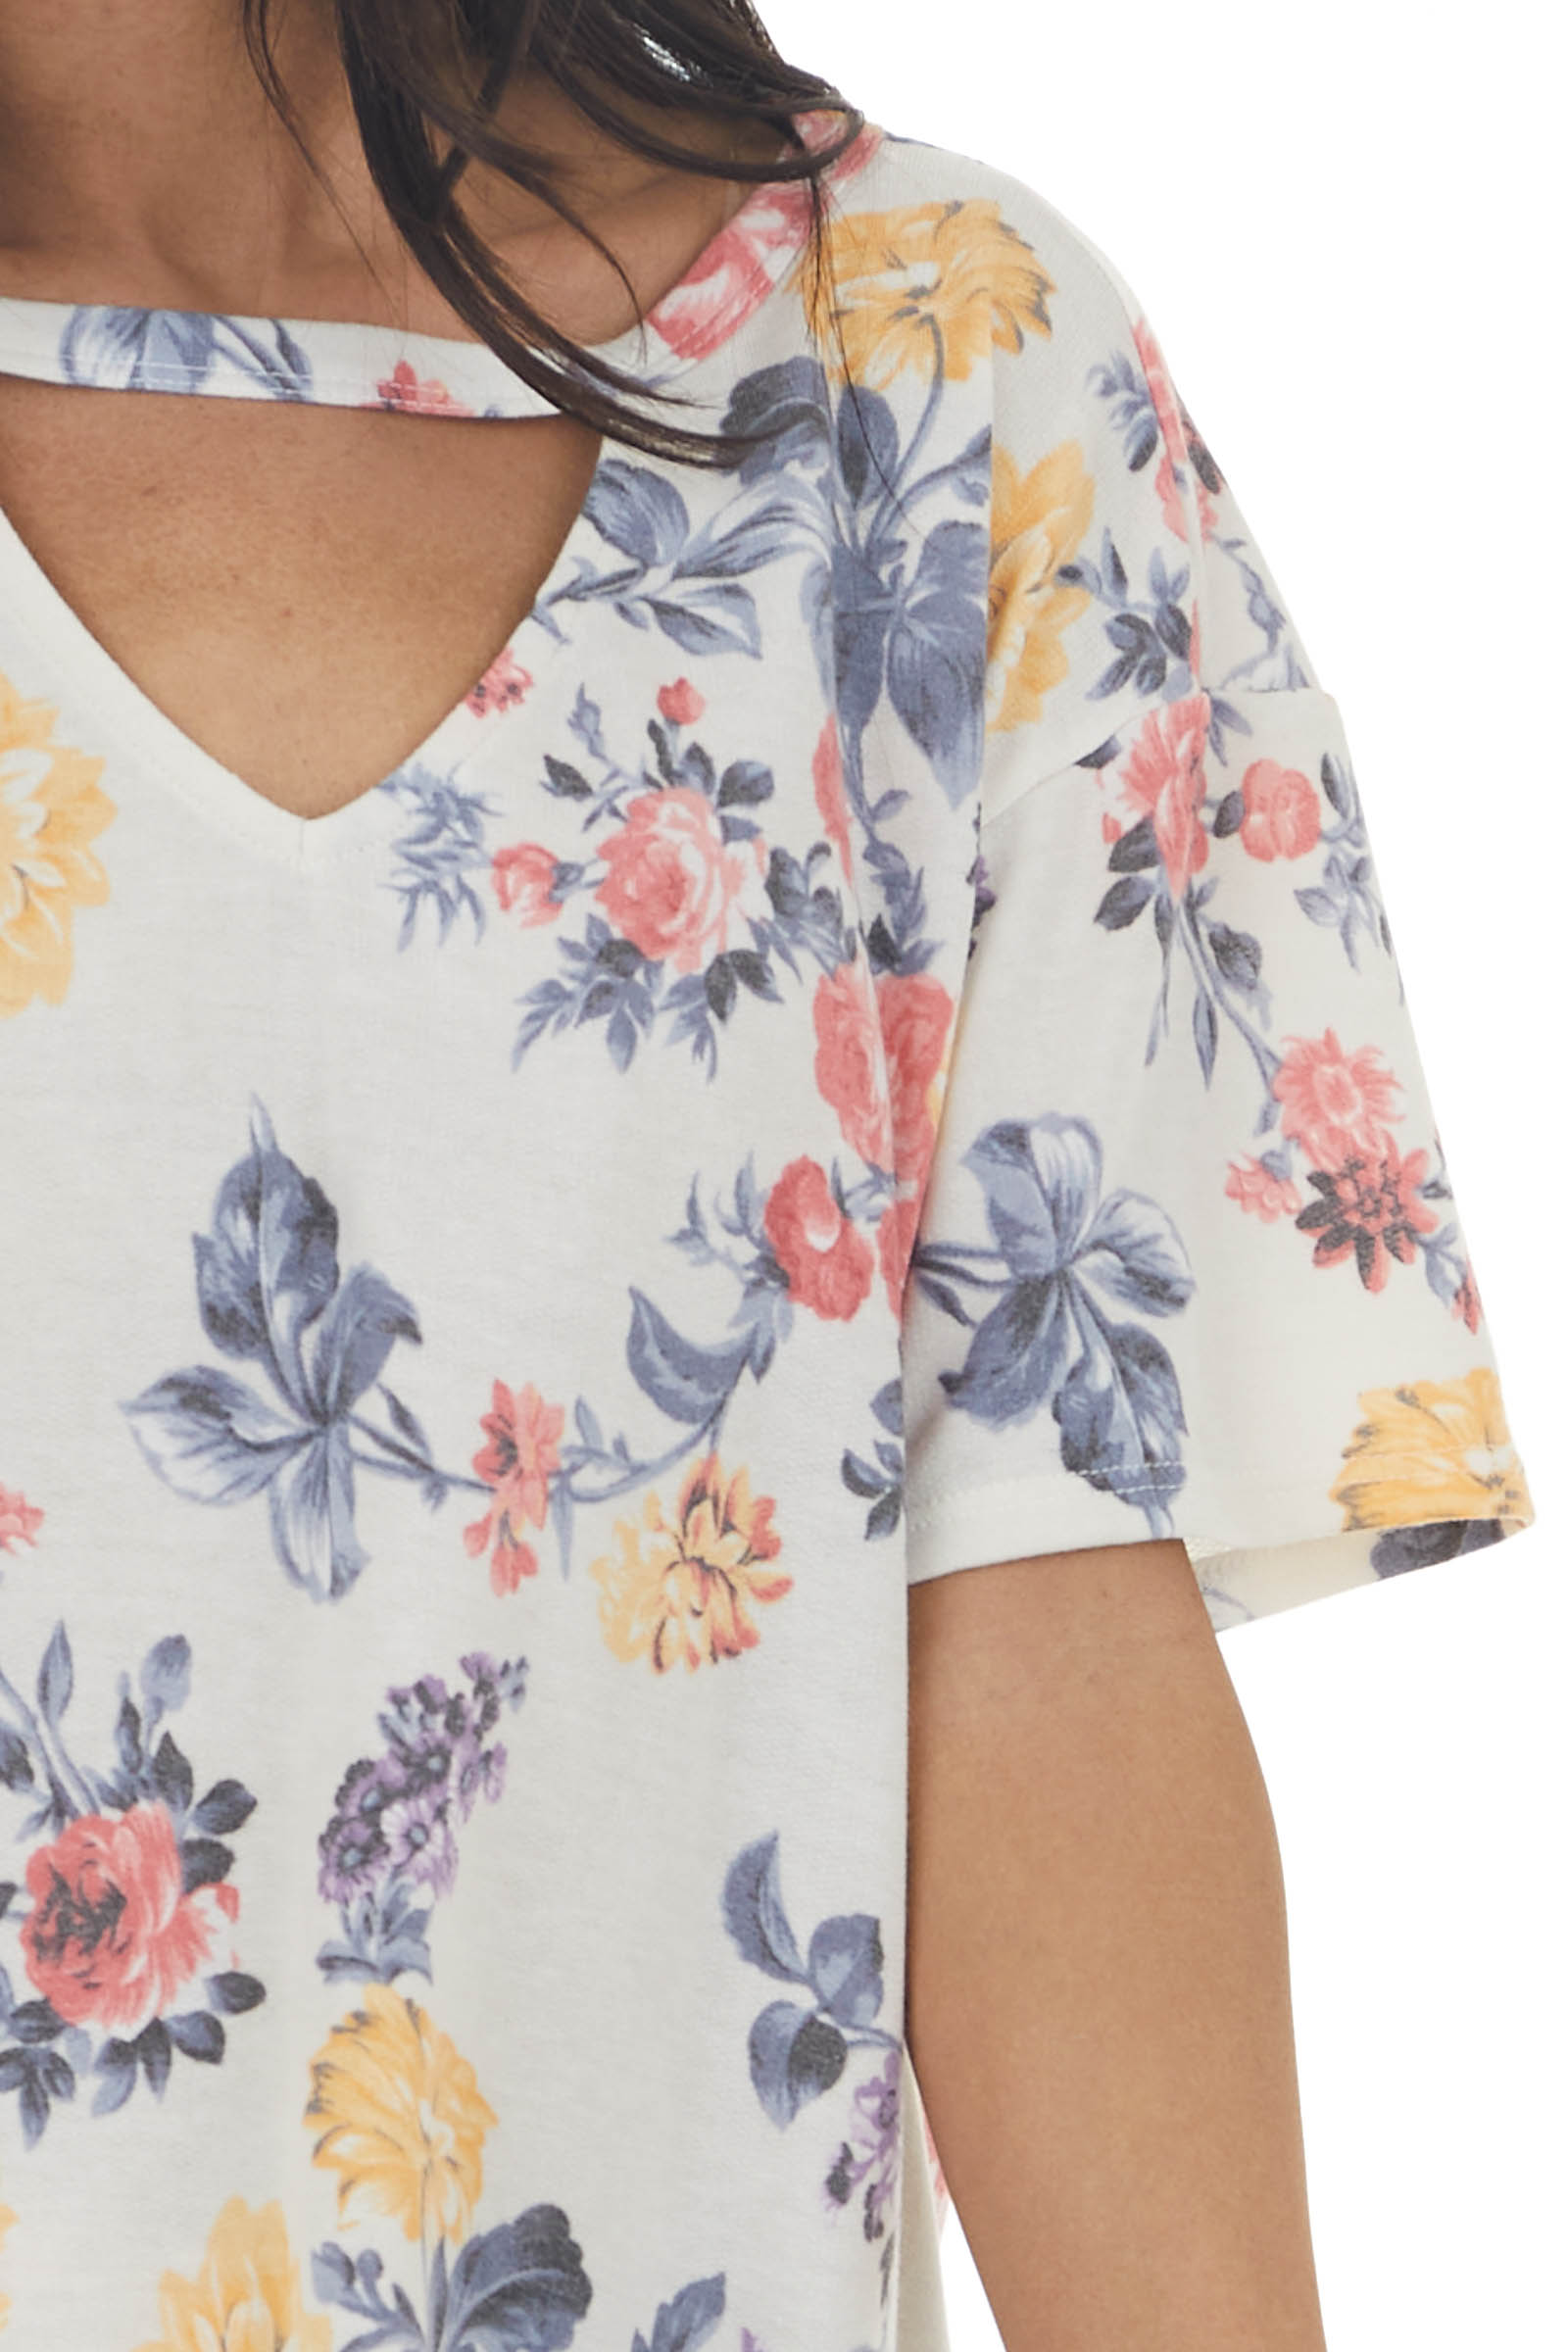 Eggshell Floral Print Short Sleeve Top with Cut Out Detail